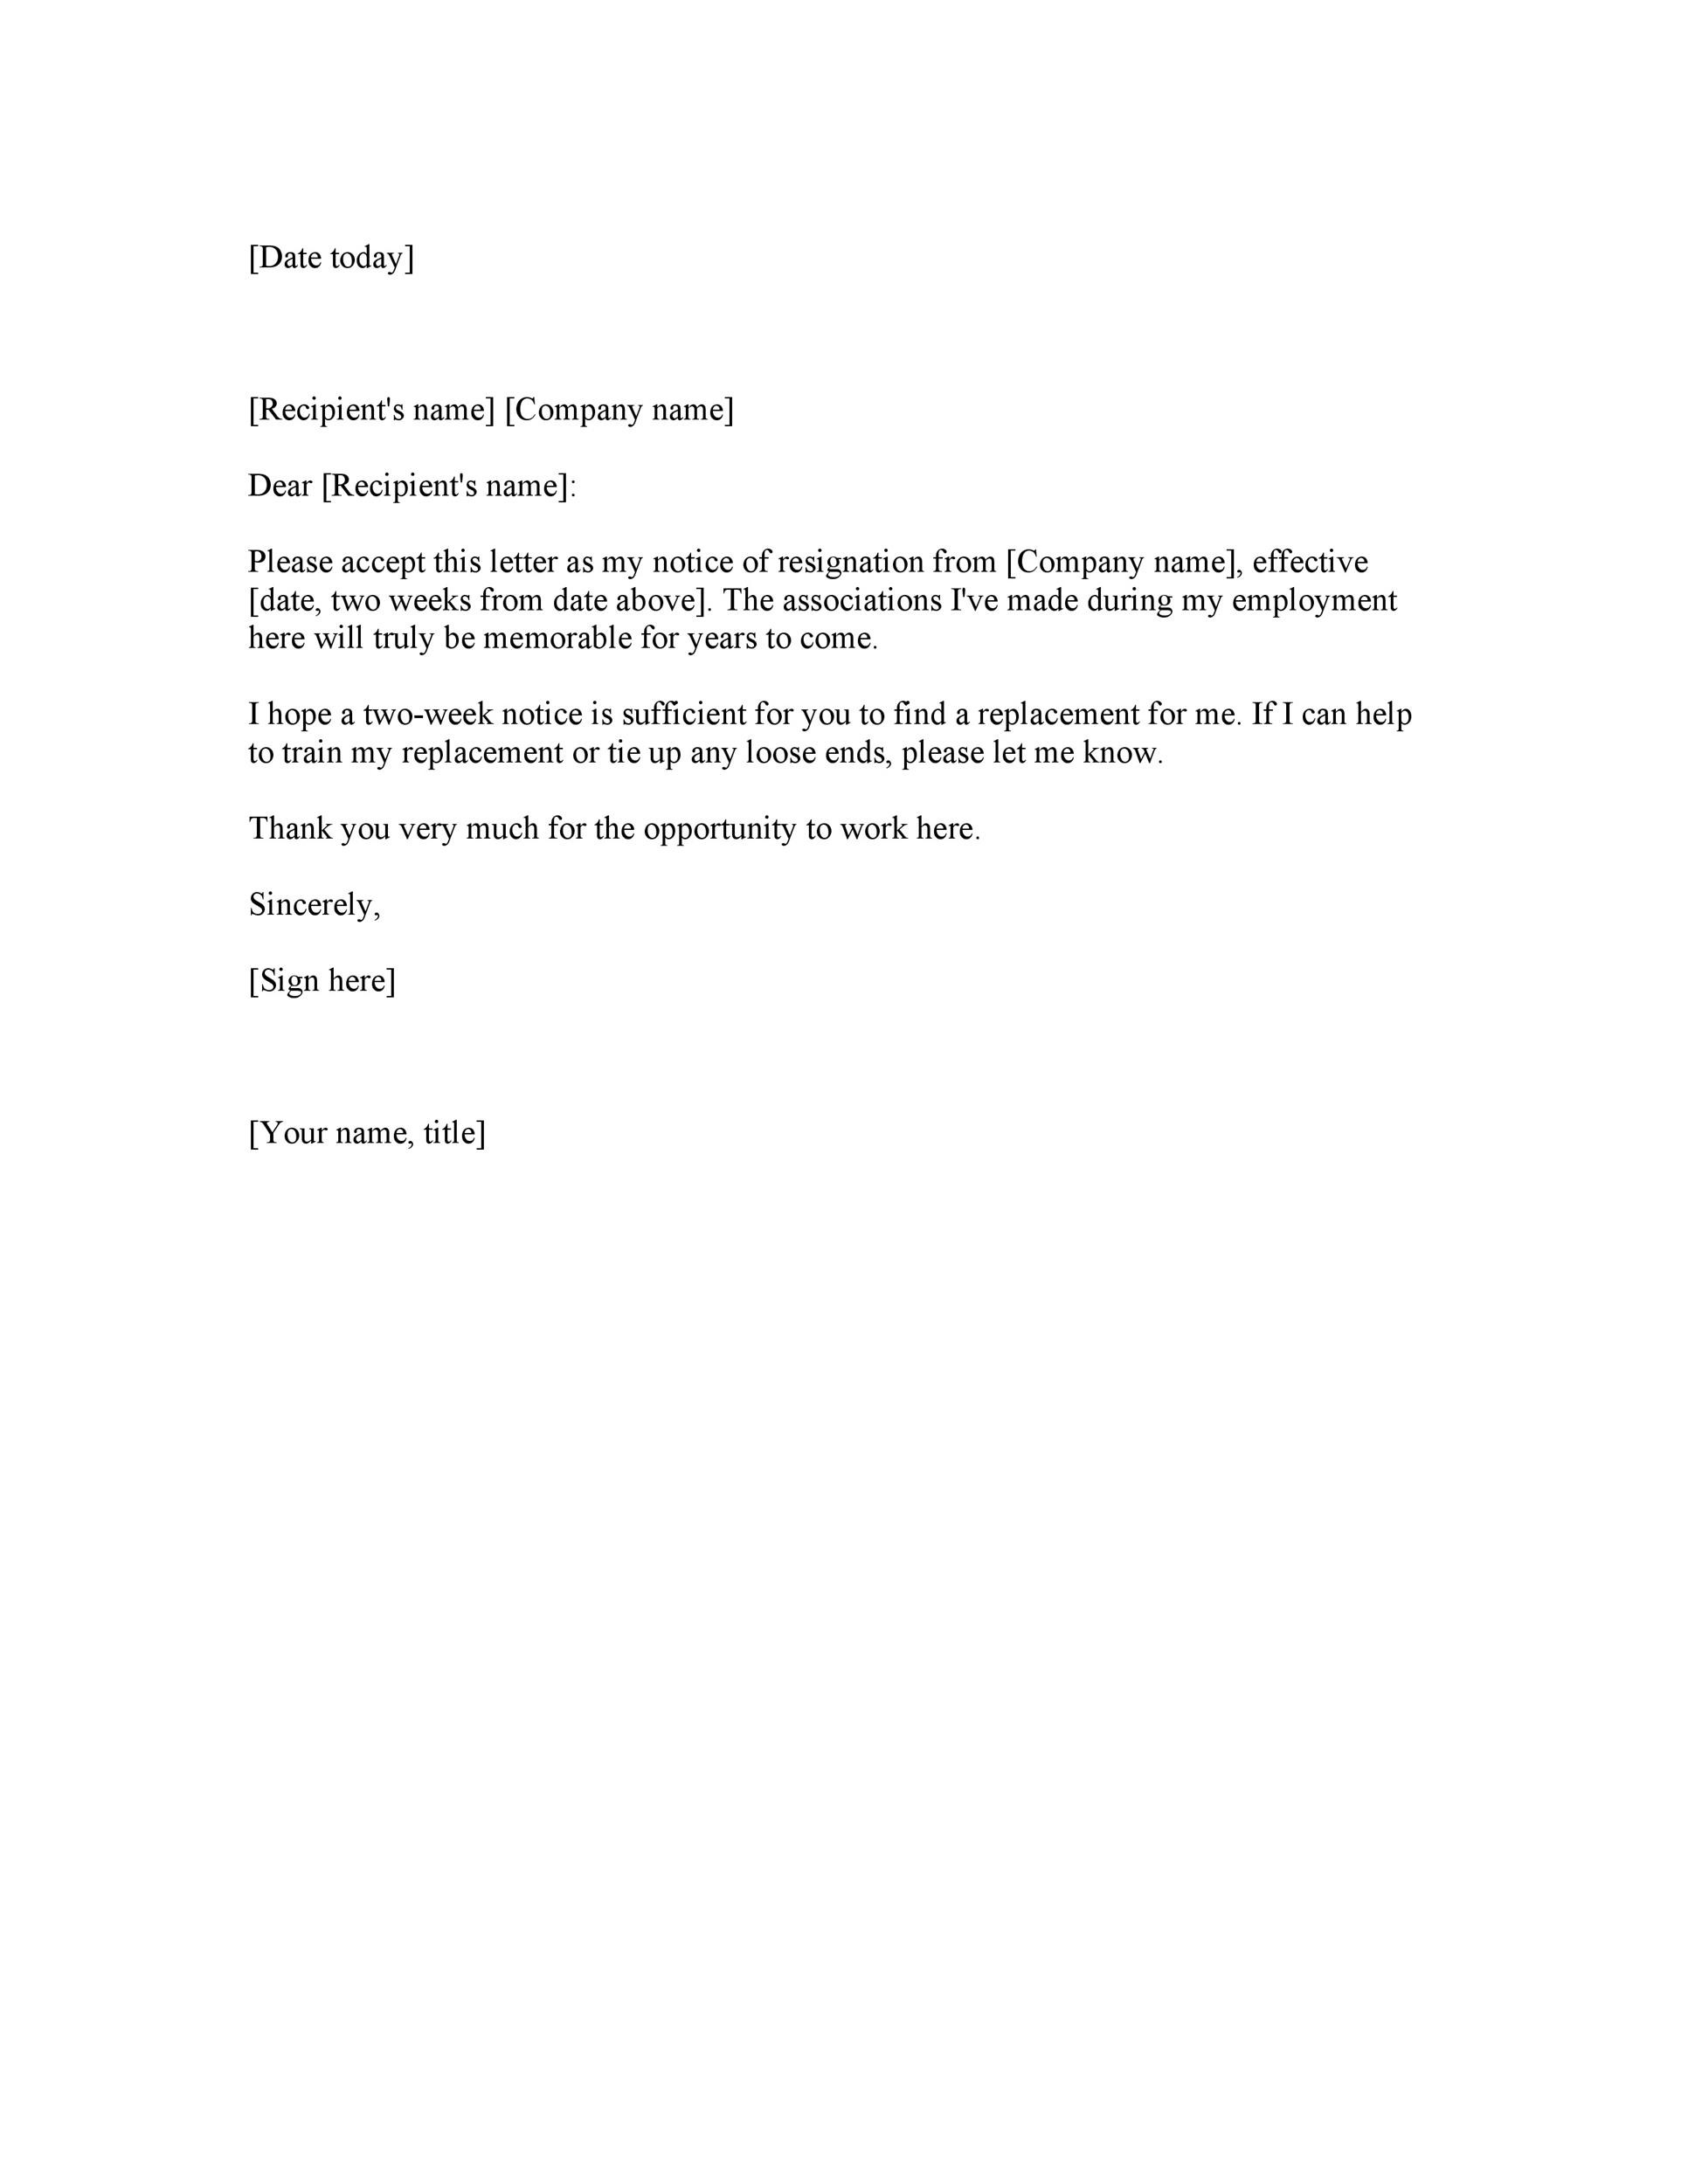 40 Two Weeks Notice Letters  Resignation Letter Templates - sample resignation letter 2 weeks notice